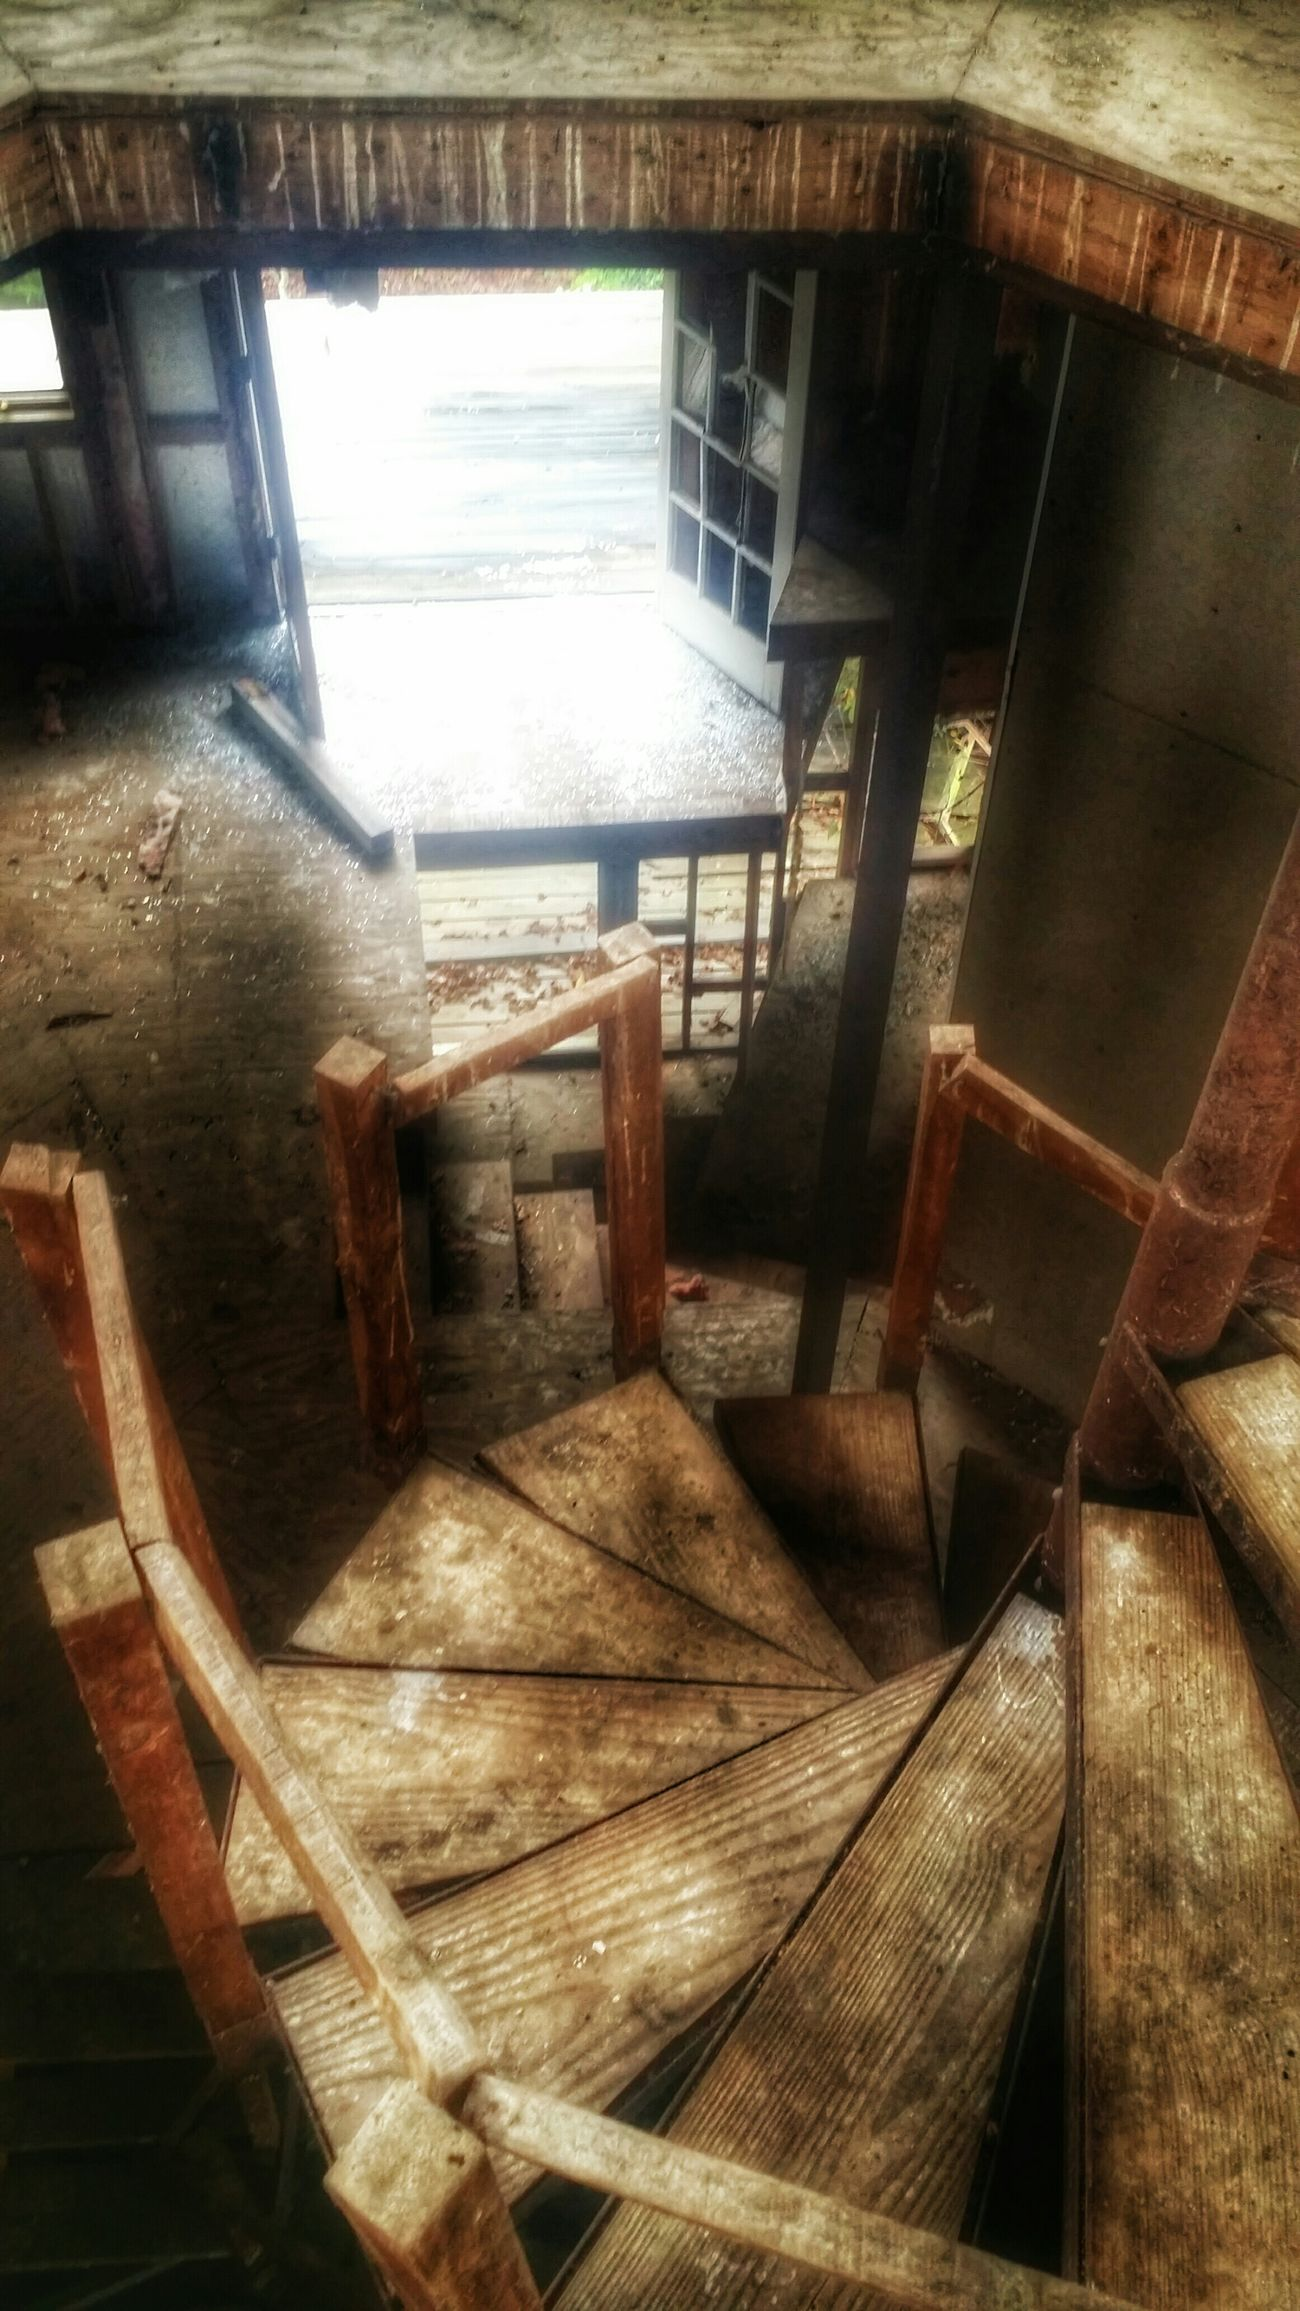 Life is not measured by the number of breaths we take, but by the moments that take our breath away.  MayaAngelou Abandoned House North Texas Peace And Quiet Lostplaces In The Middle Of Nowhere Taking Pictures EyeEmTexas Twisted Dream Desolated Photography Eeyemgallery Eyeemphotography Perfection The Dithyramb Post (Banters) Stairwell Sessions